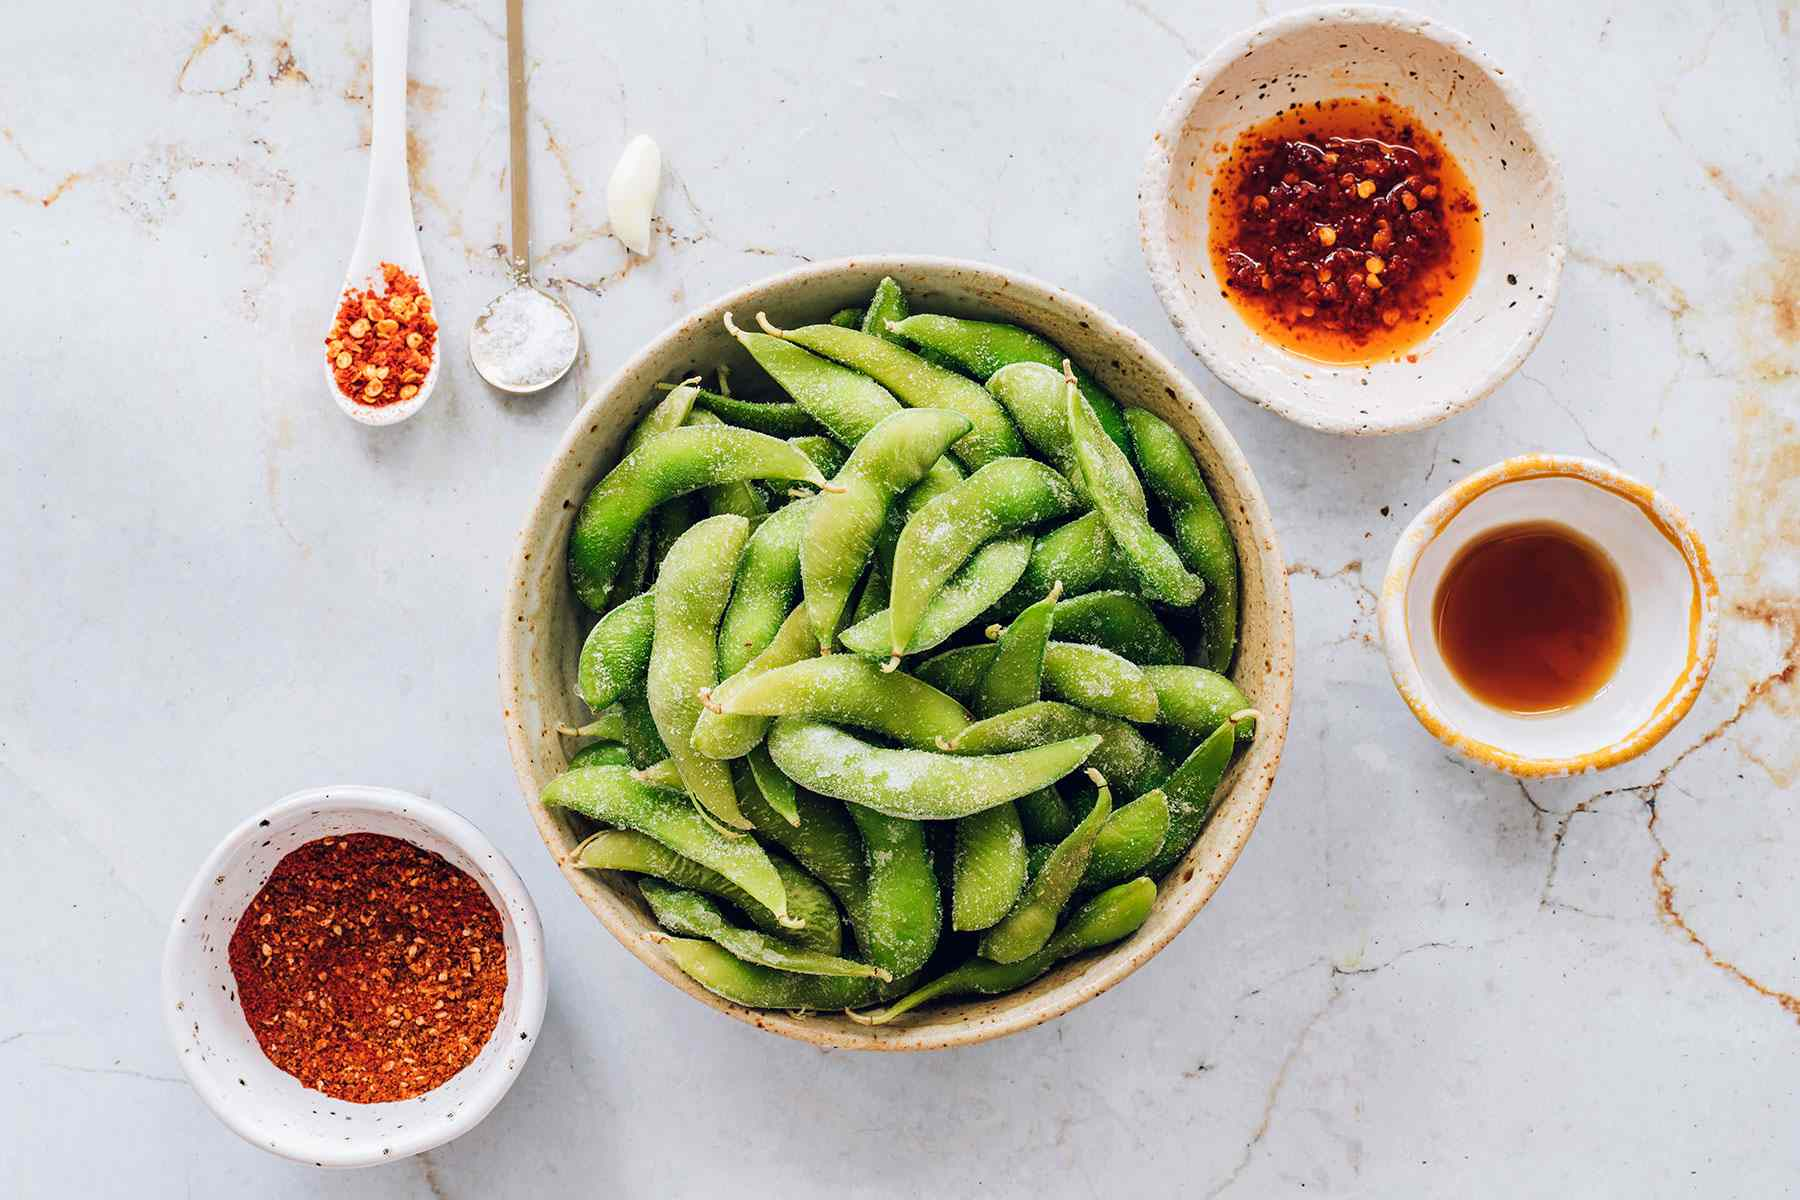 Ingredients for spicy edamame